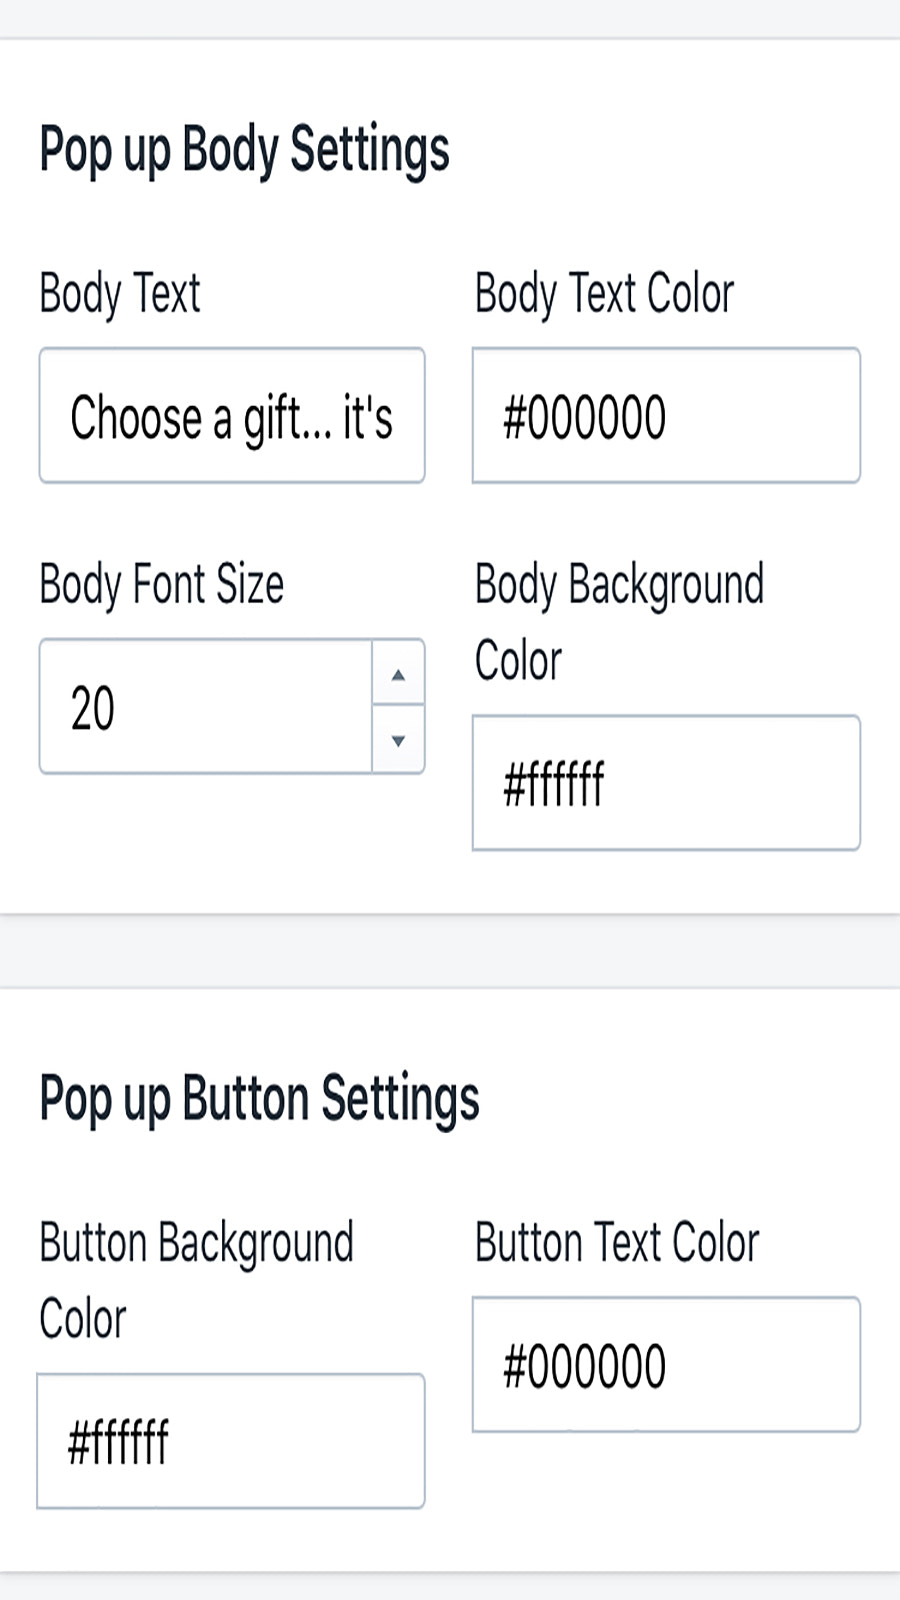 You have the option to customize this app to match your store.